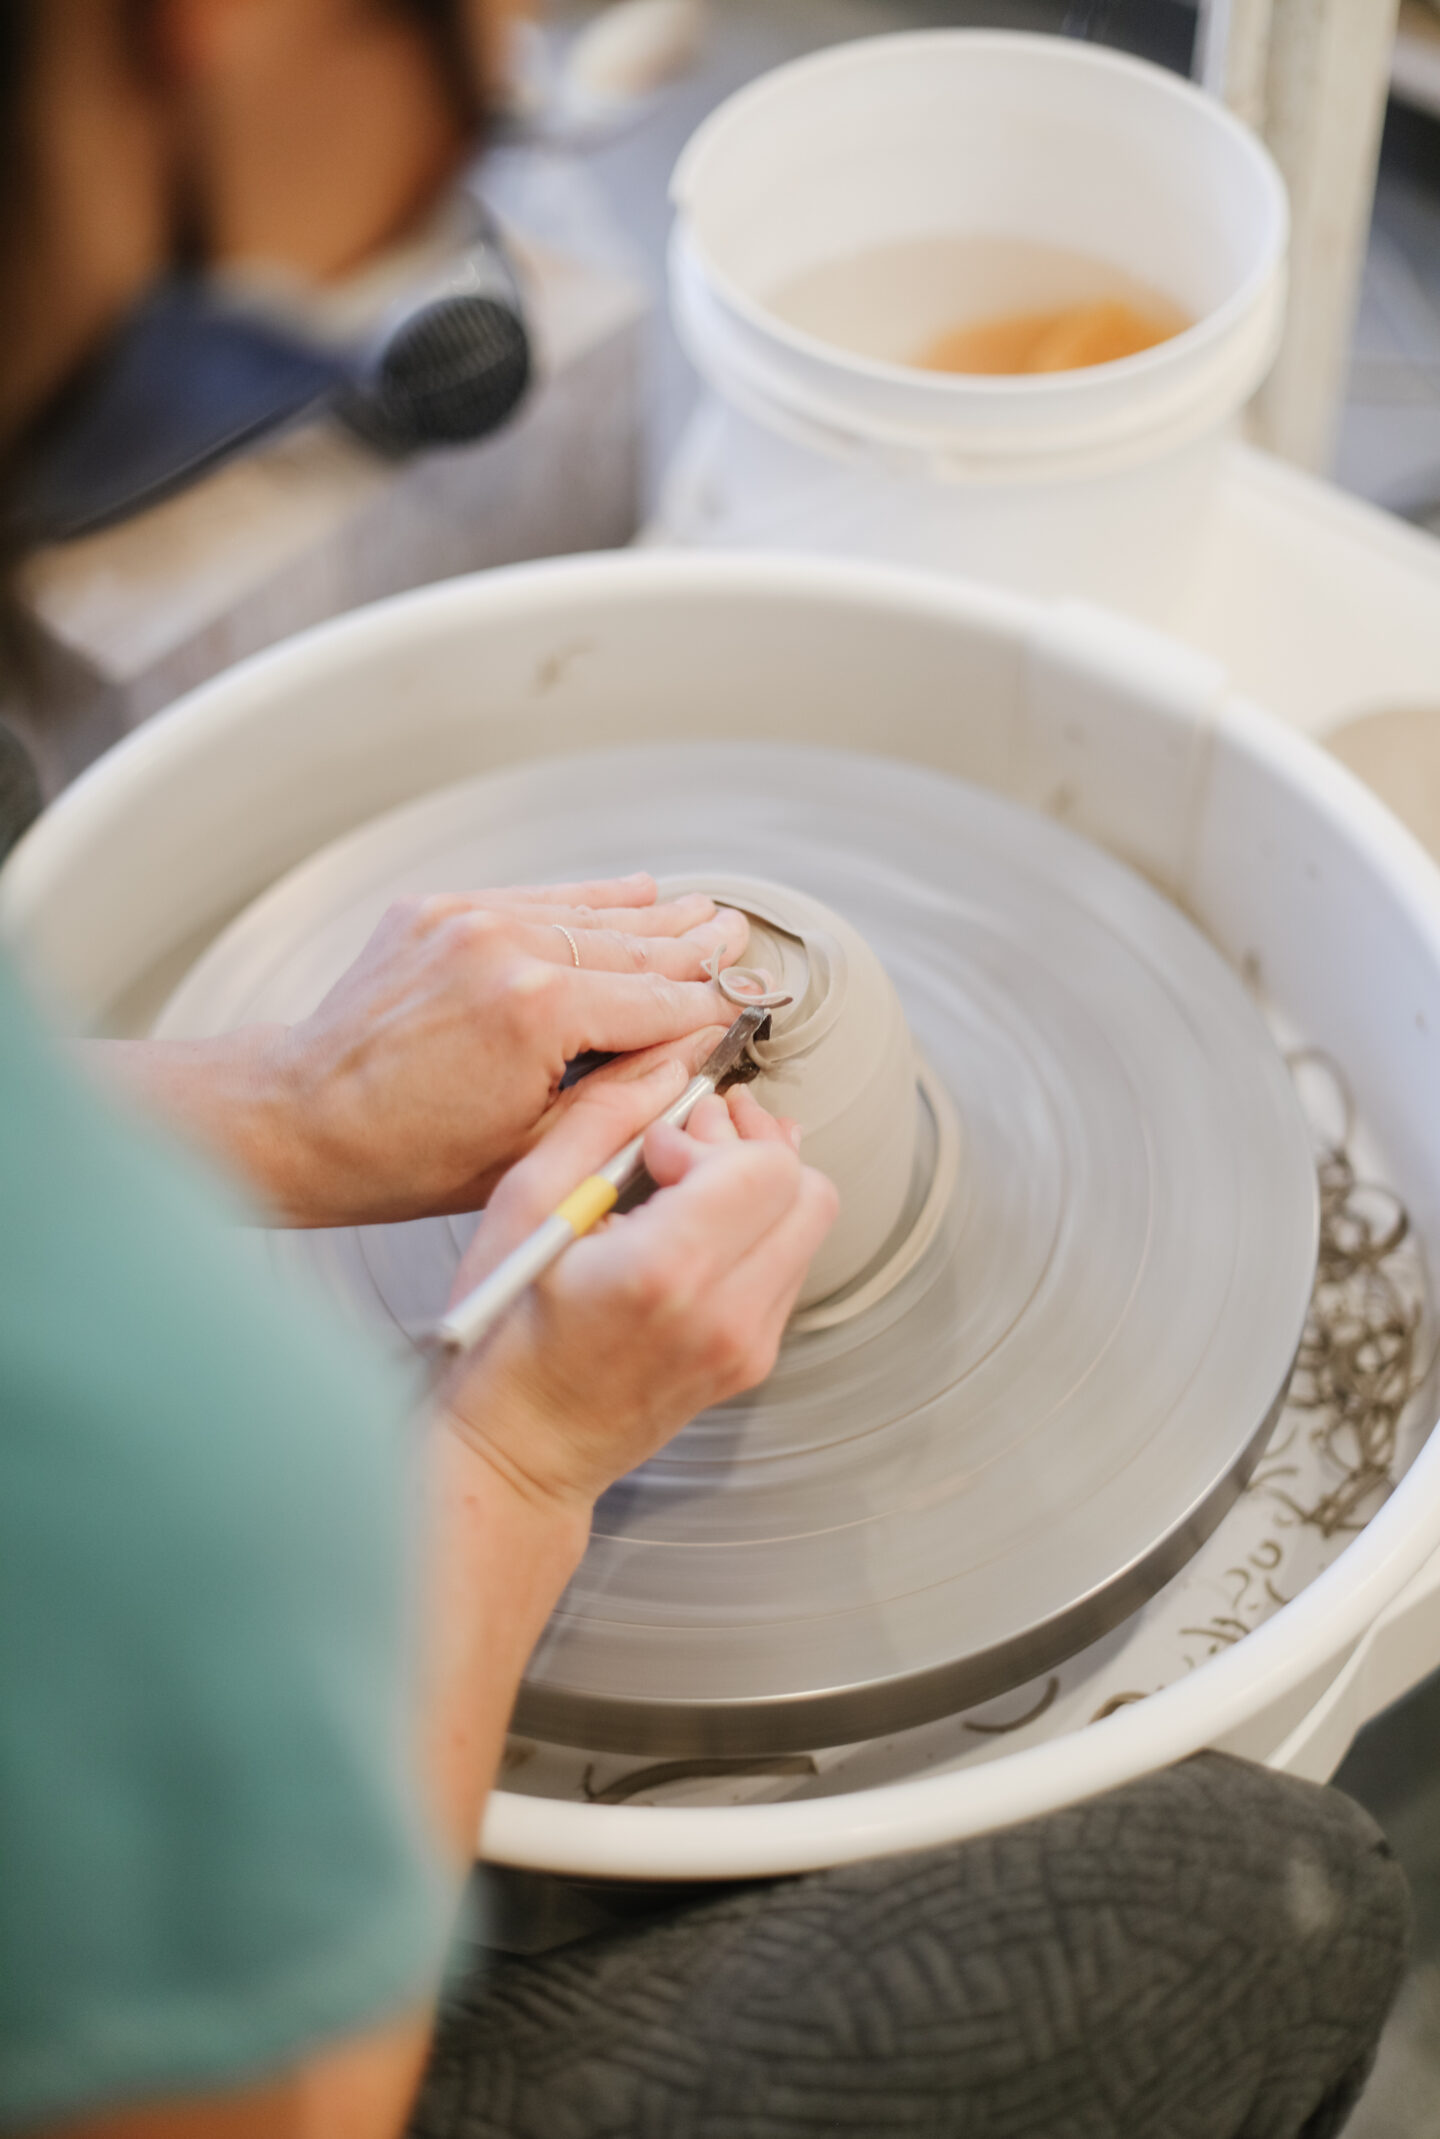 Pottery essentials for begginers